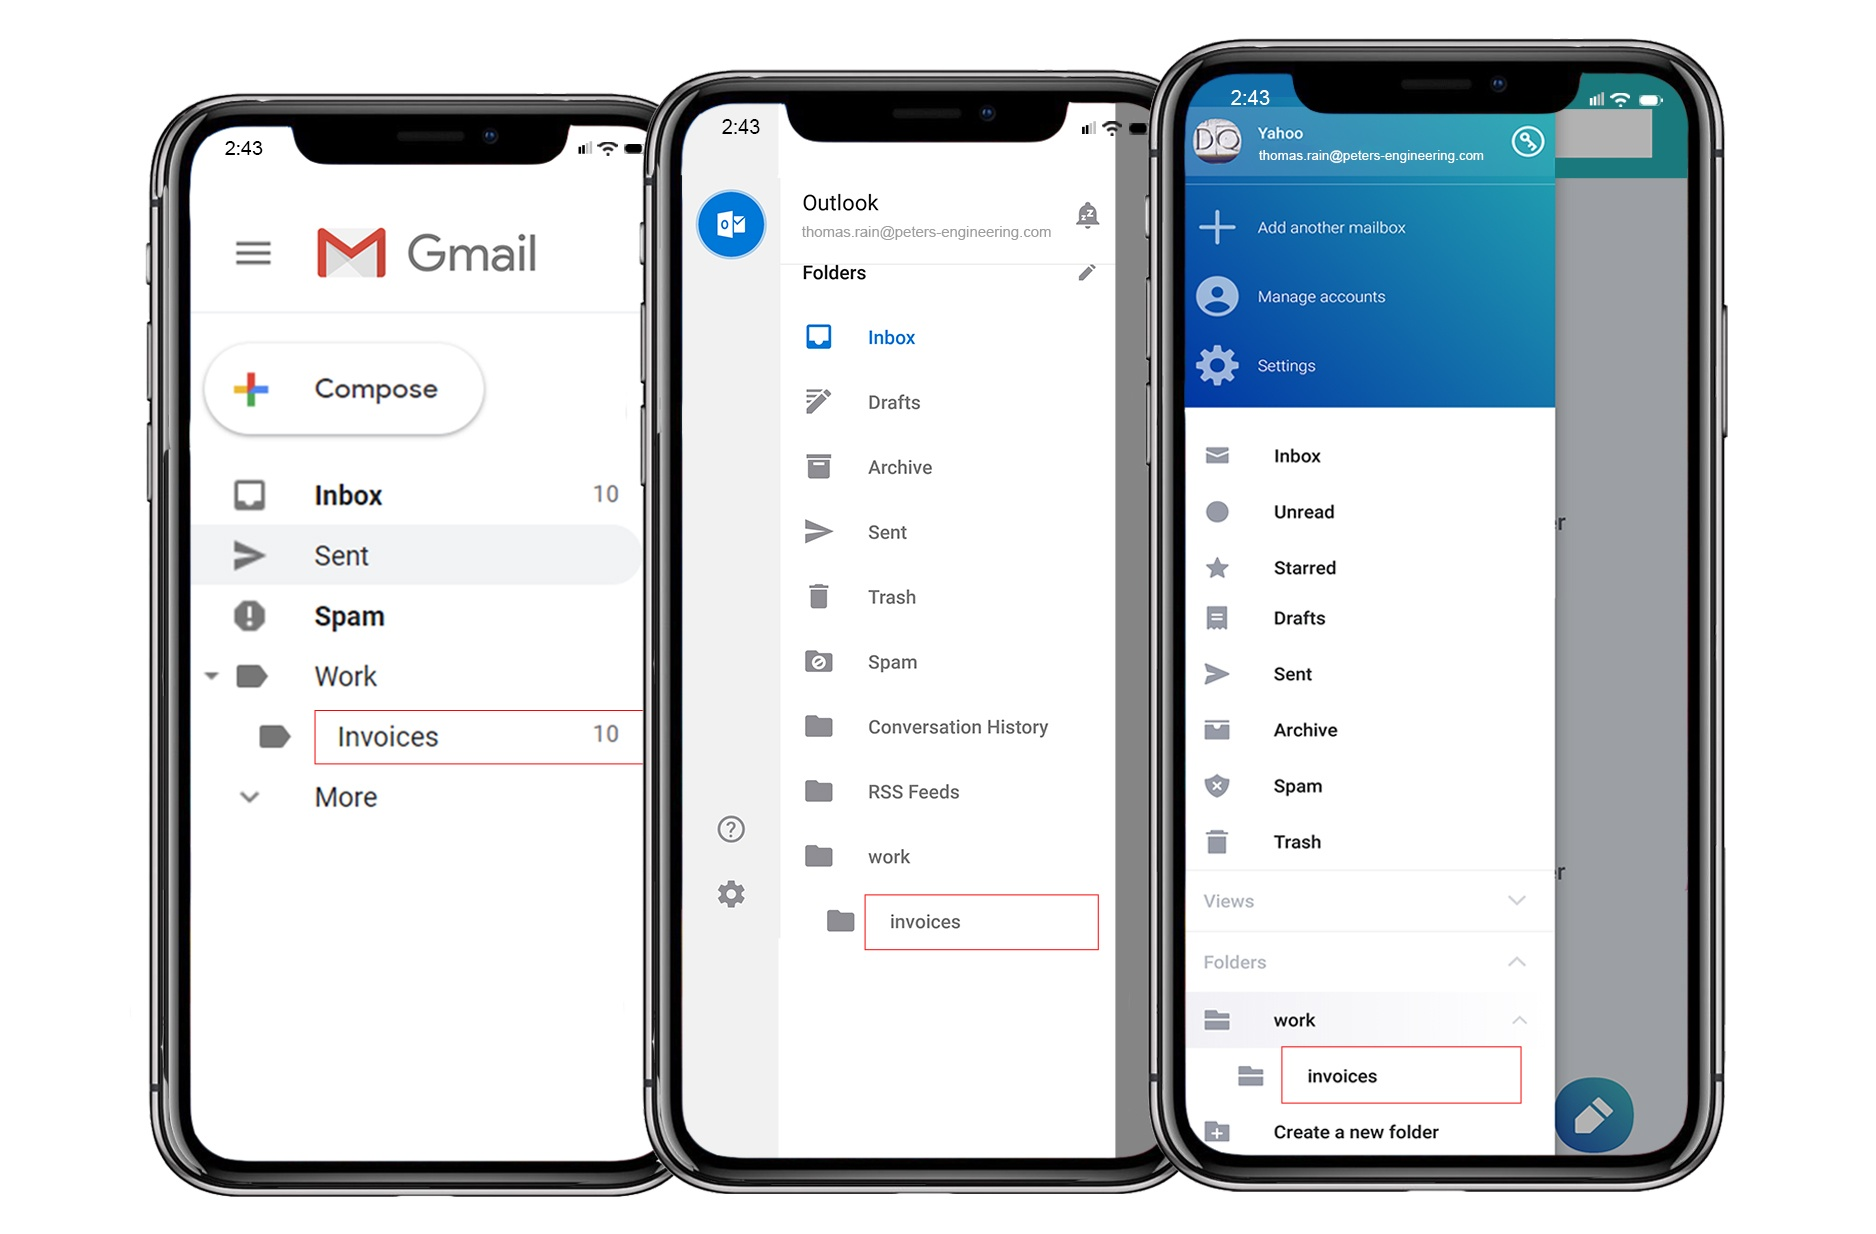 Connect to Mail